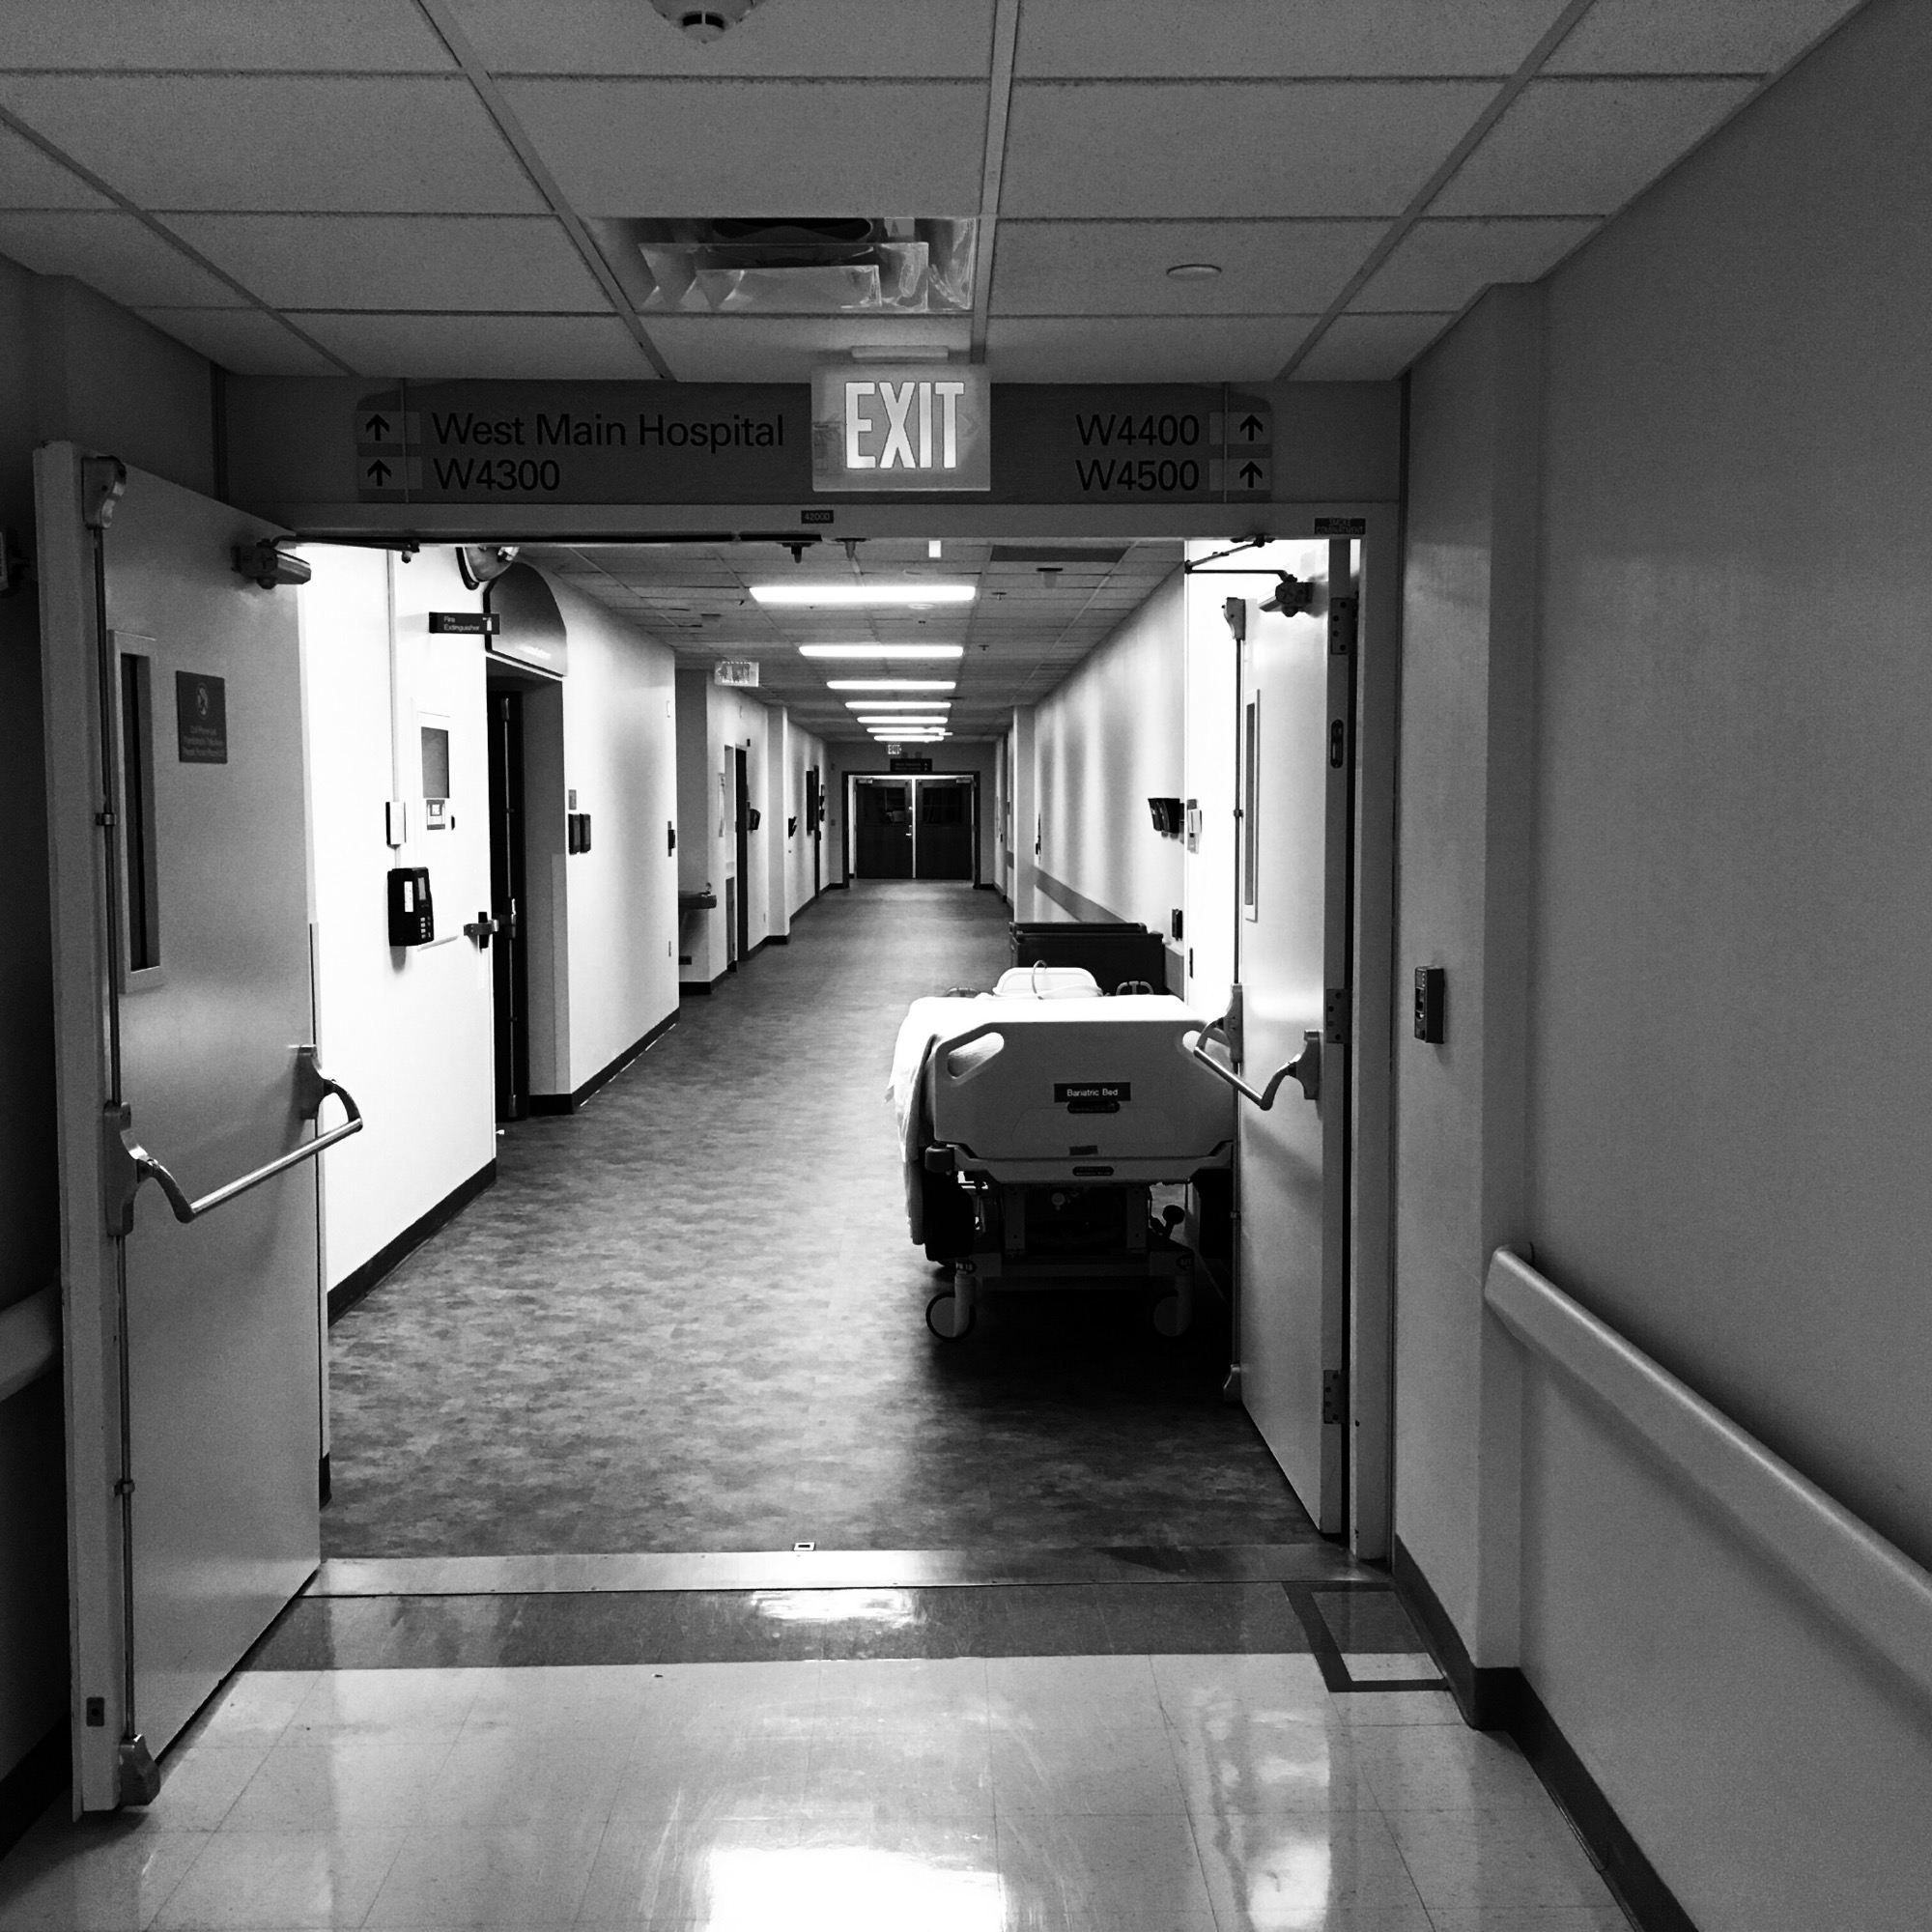 long, empty hospital corridor with empty hospital bed parked in the distance